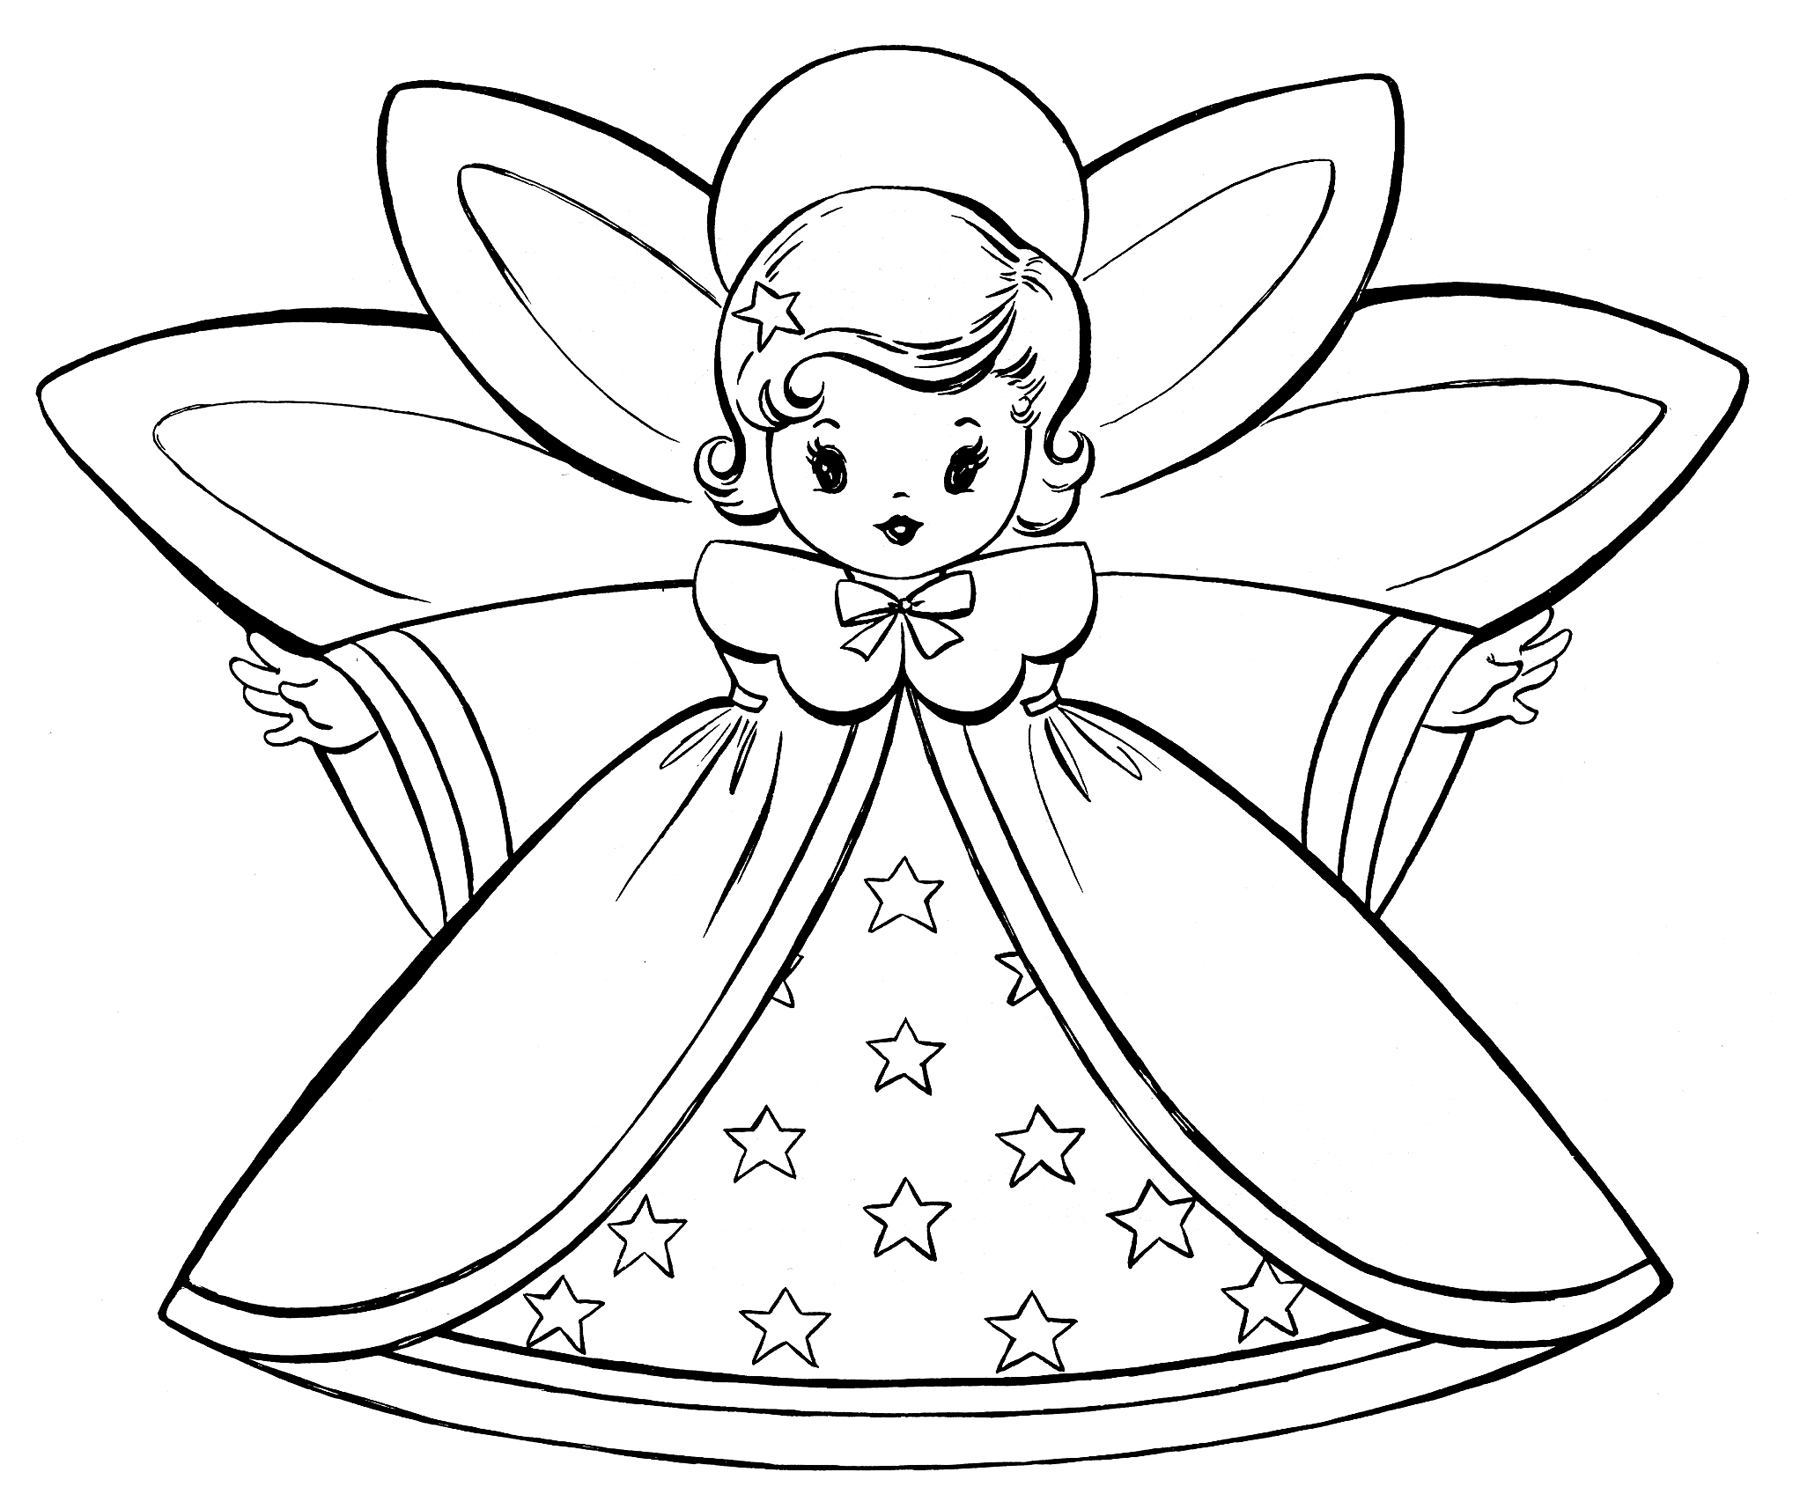 angel colouring get this free printable angel coloring pages for adults angel colouring